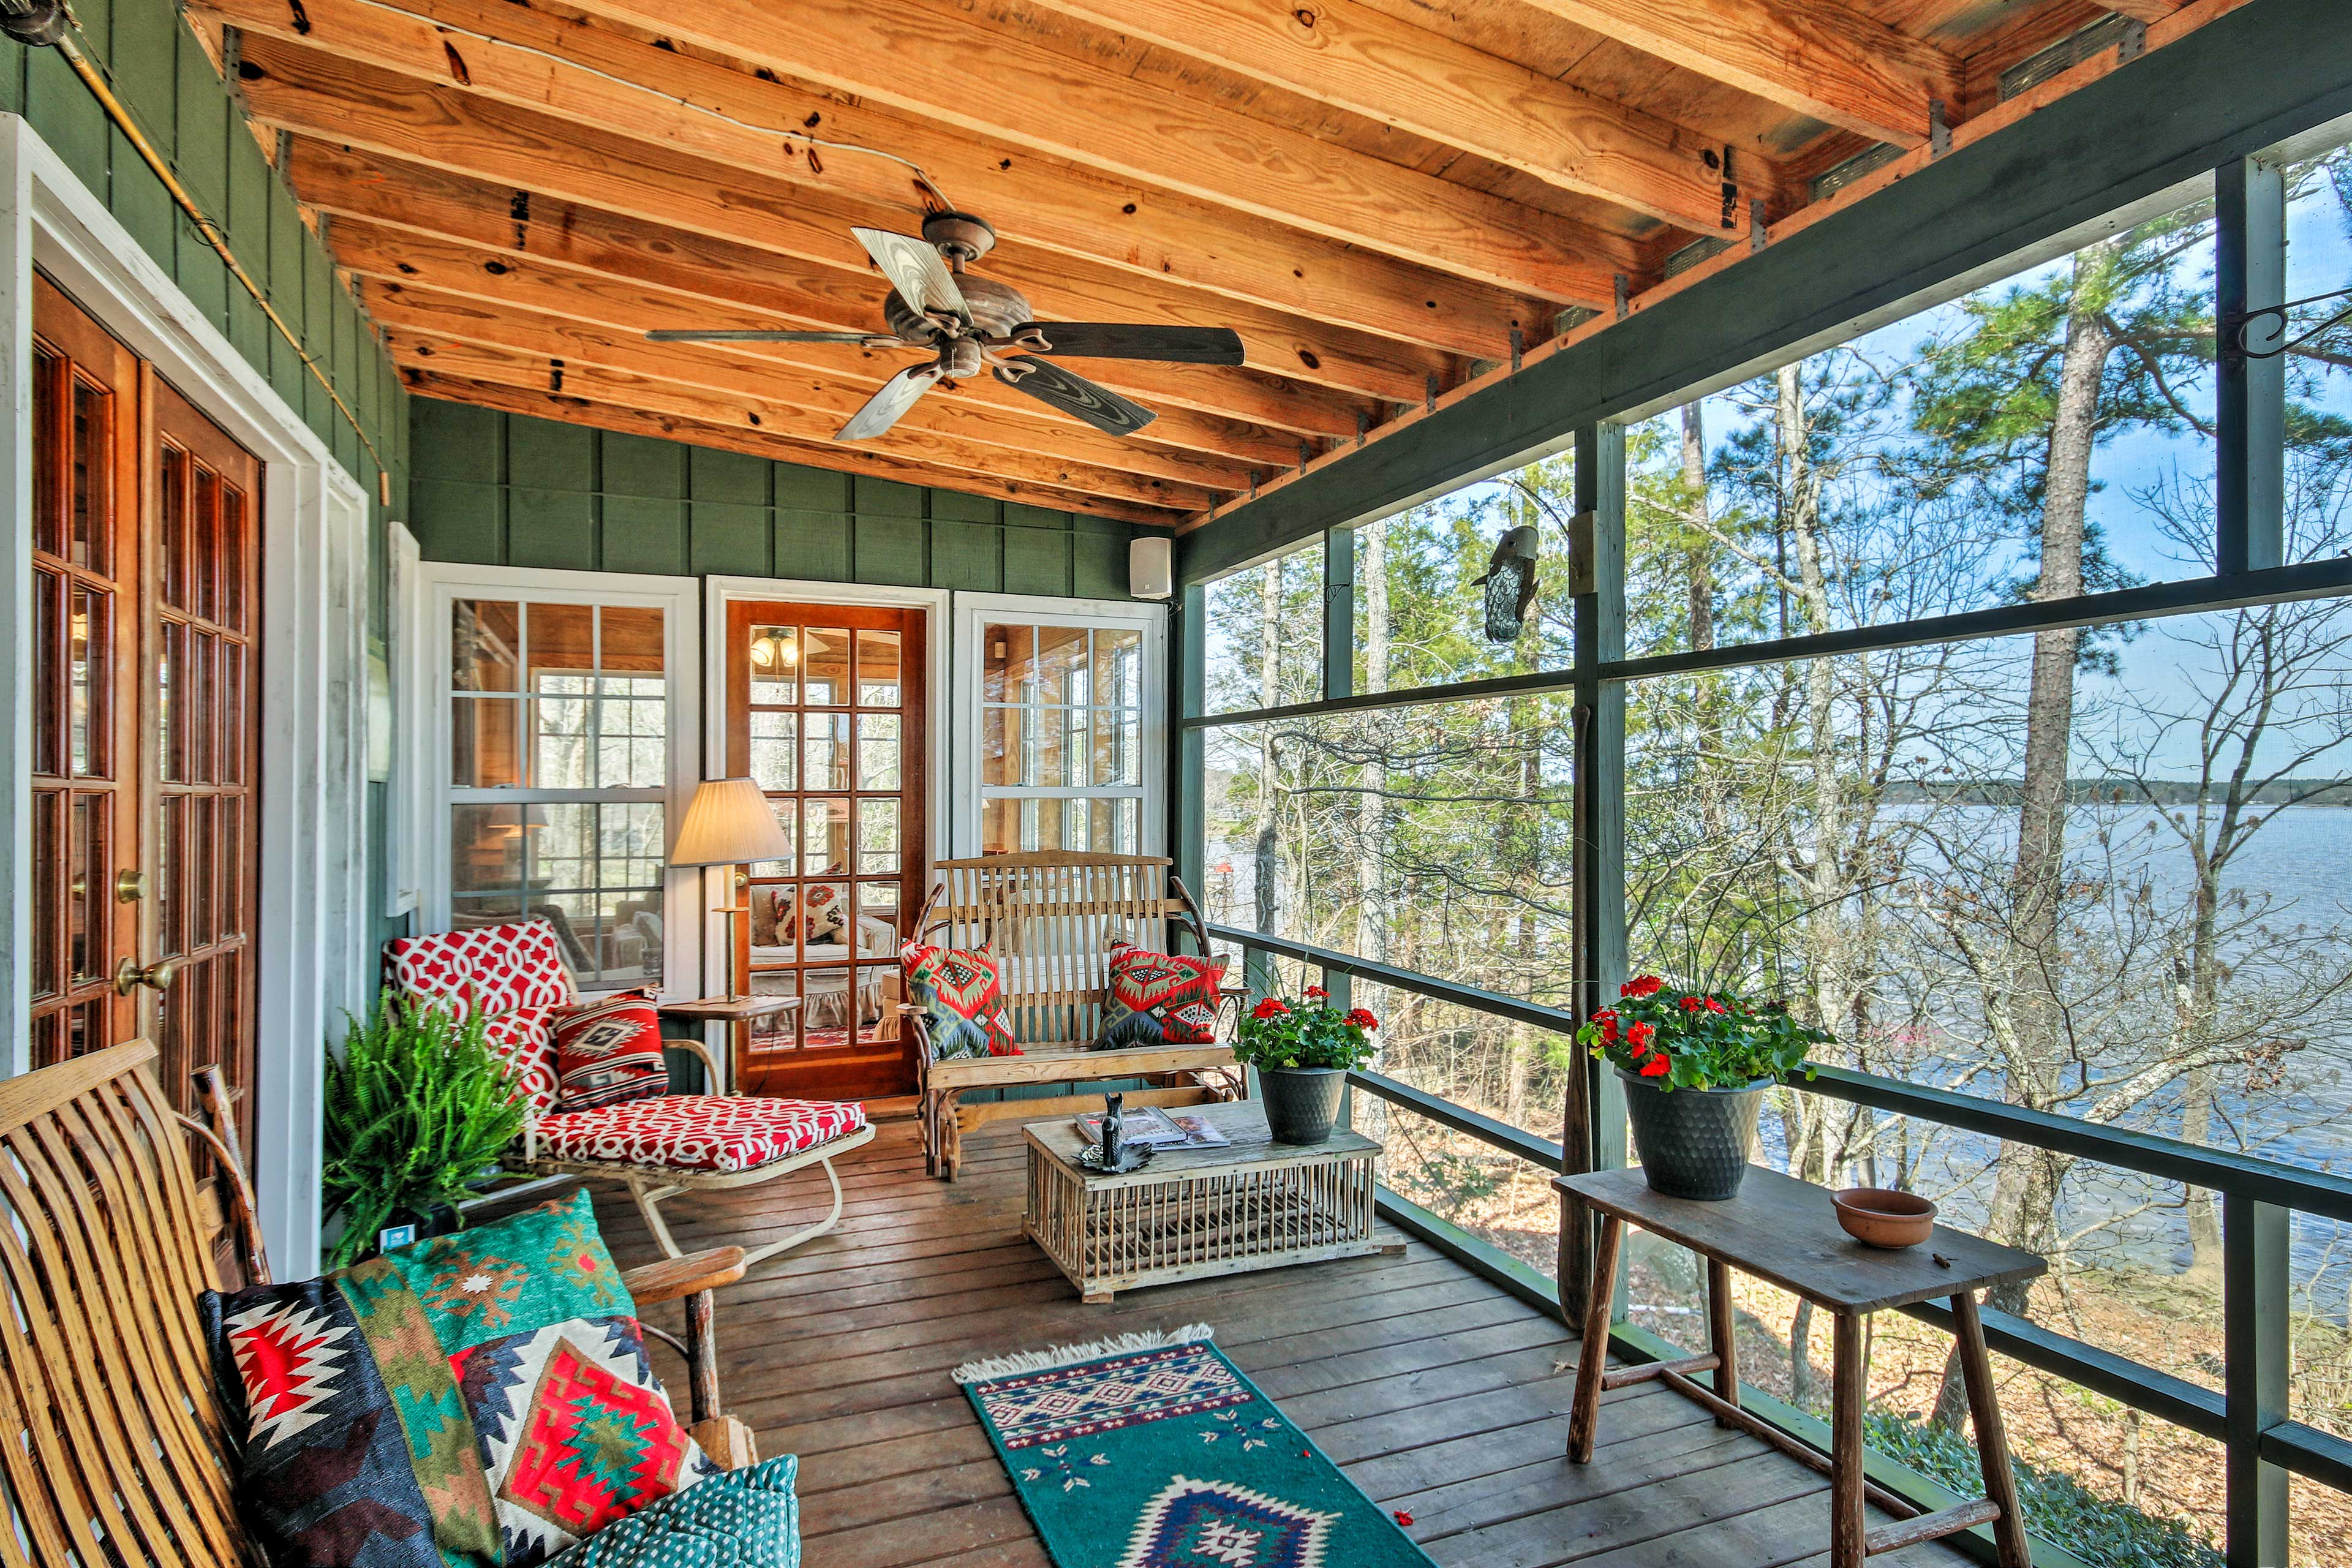 This Ridgeway, South Carolina home is the perfect escape!